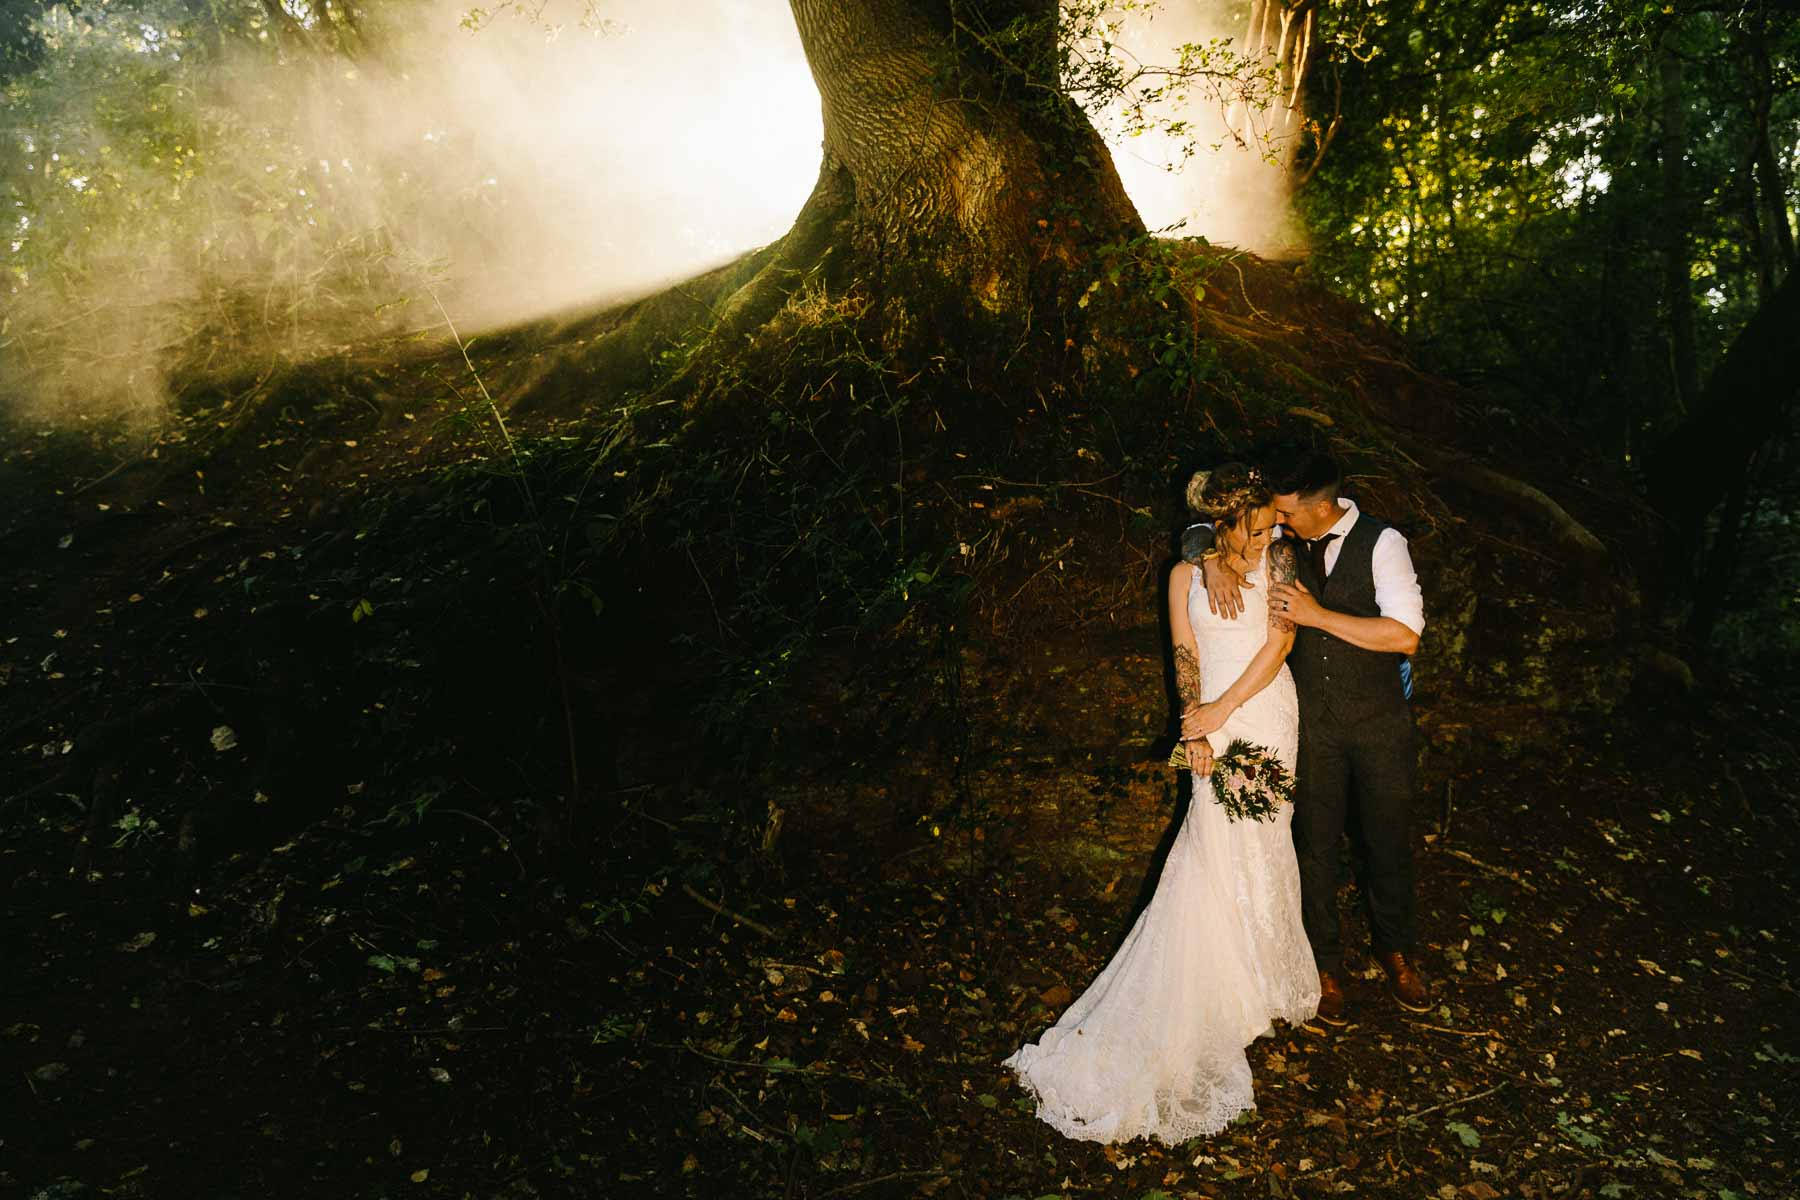 Etheral wedding photo of the couple standing under a tree with mist underneath them